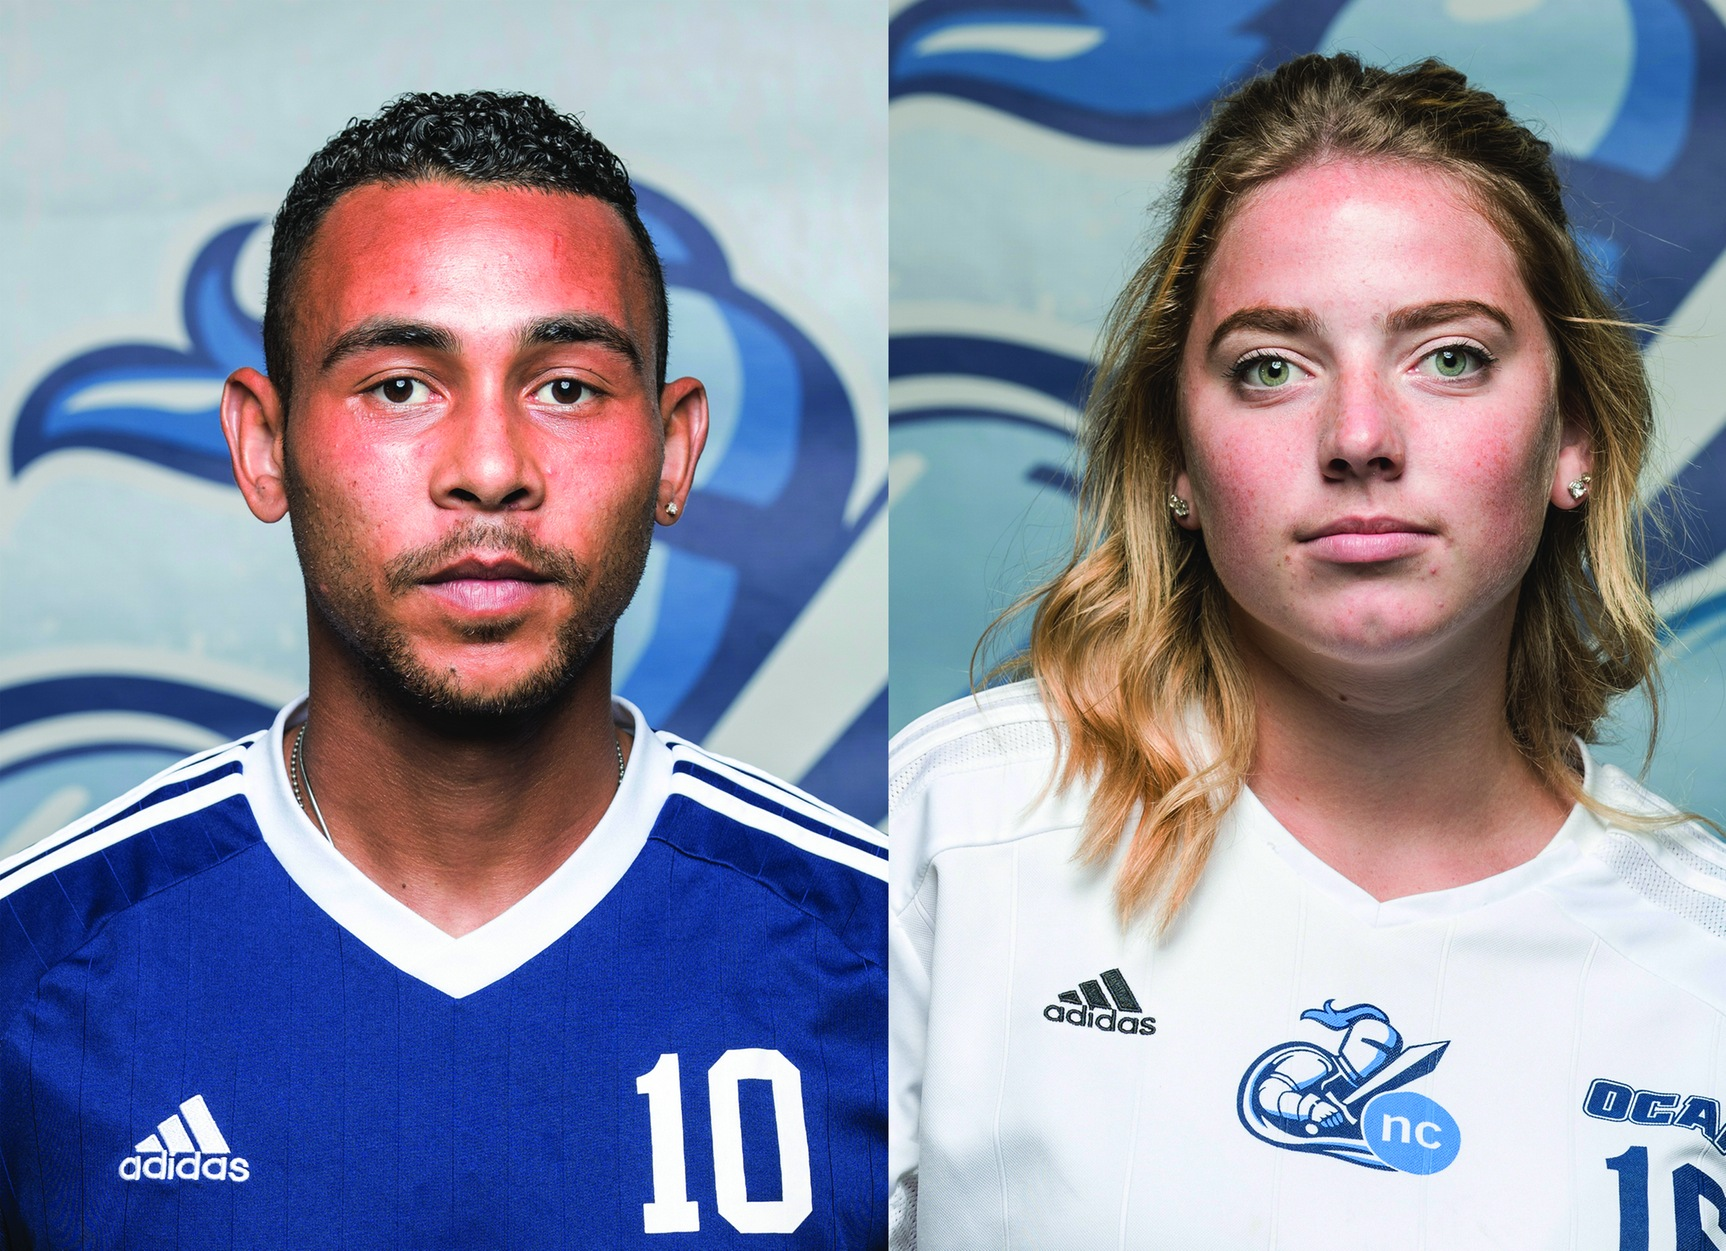 NEWS: Williams and Maecker named athletes of the week